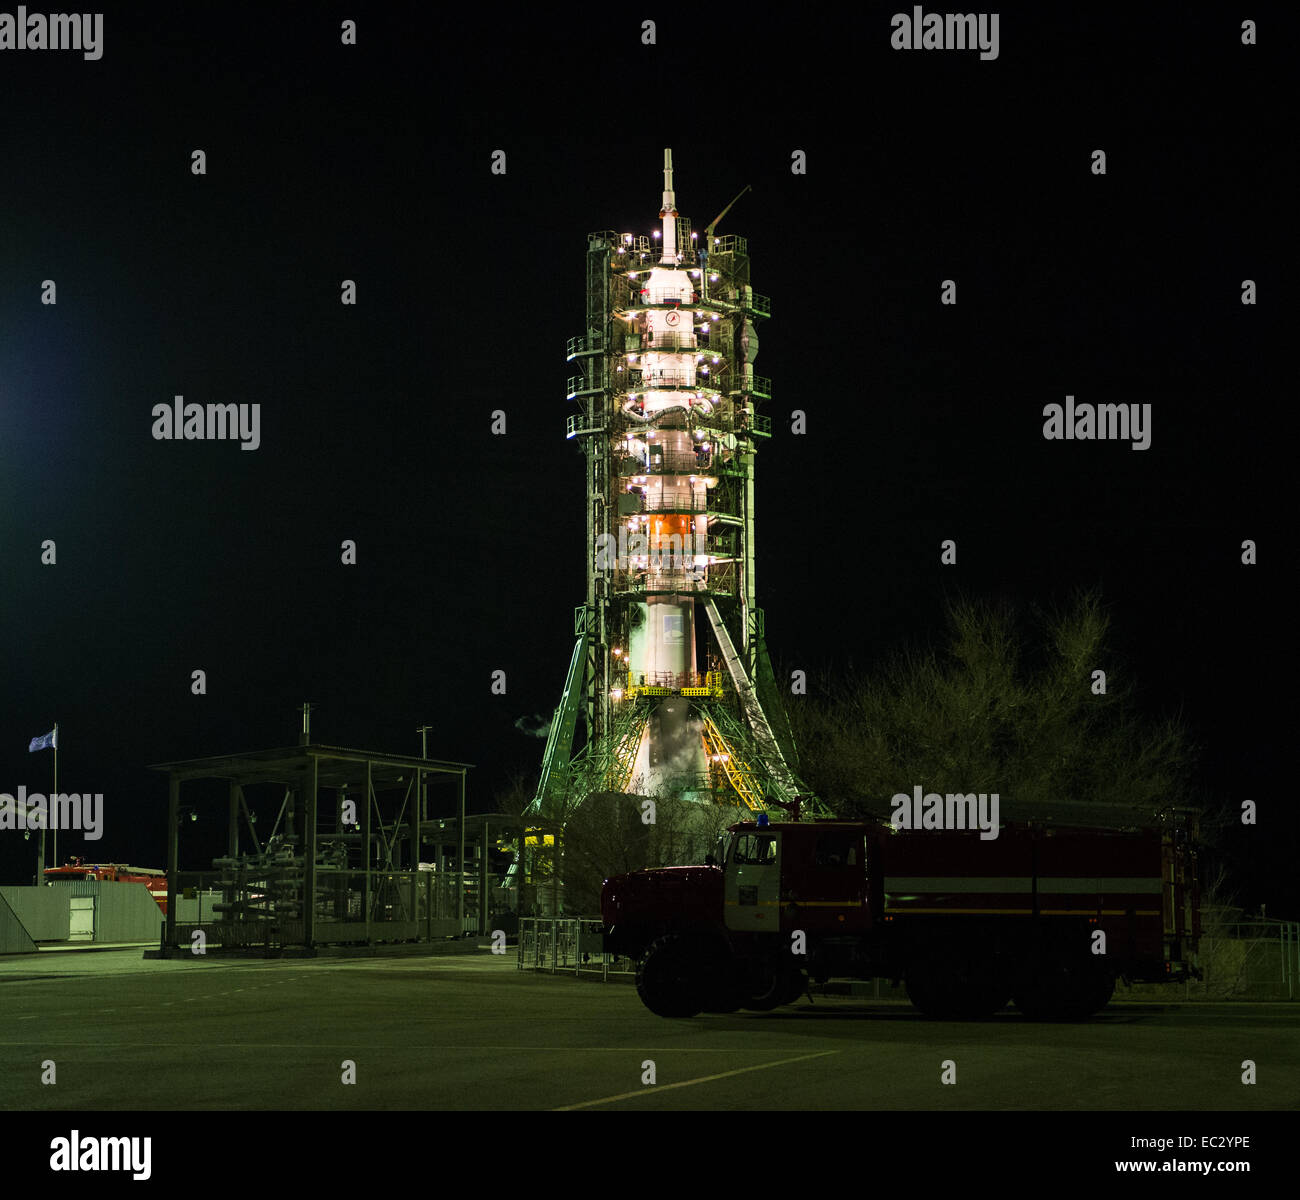 The Soyuz TMA-15M spacecraft is seen on the launch pad just prior to launch on Monday, Nov. 24, 2014 at the Baikonur - Stock Image